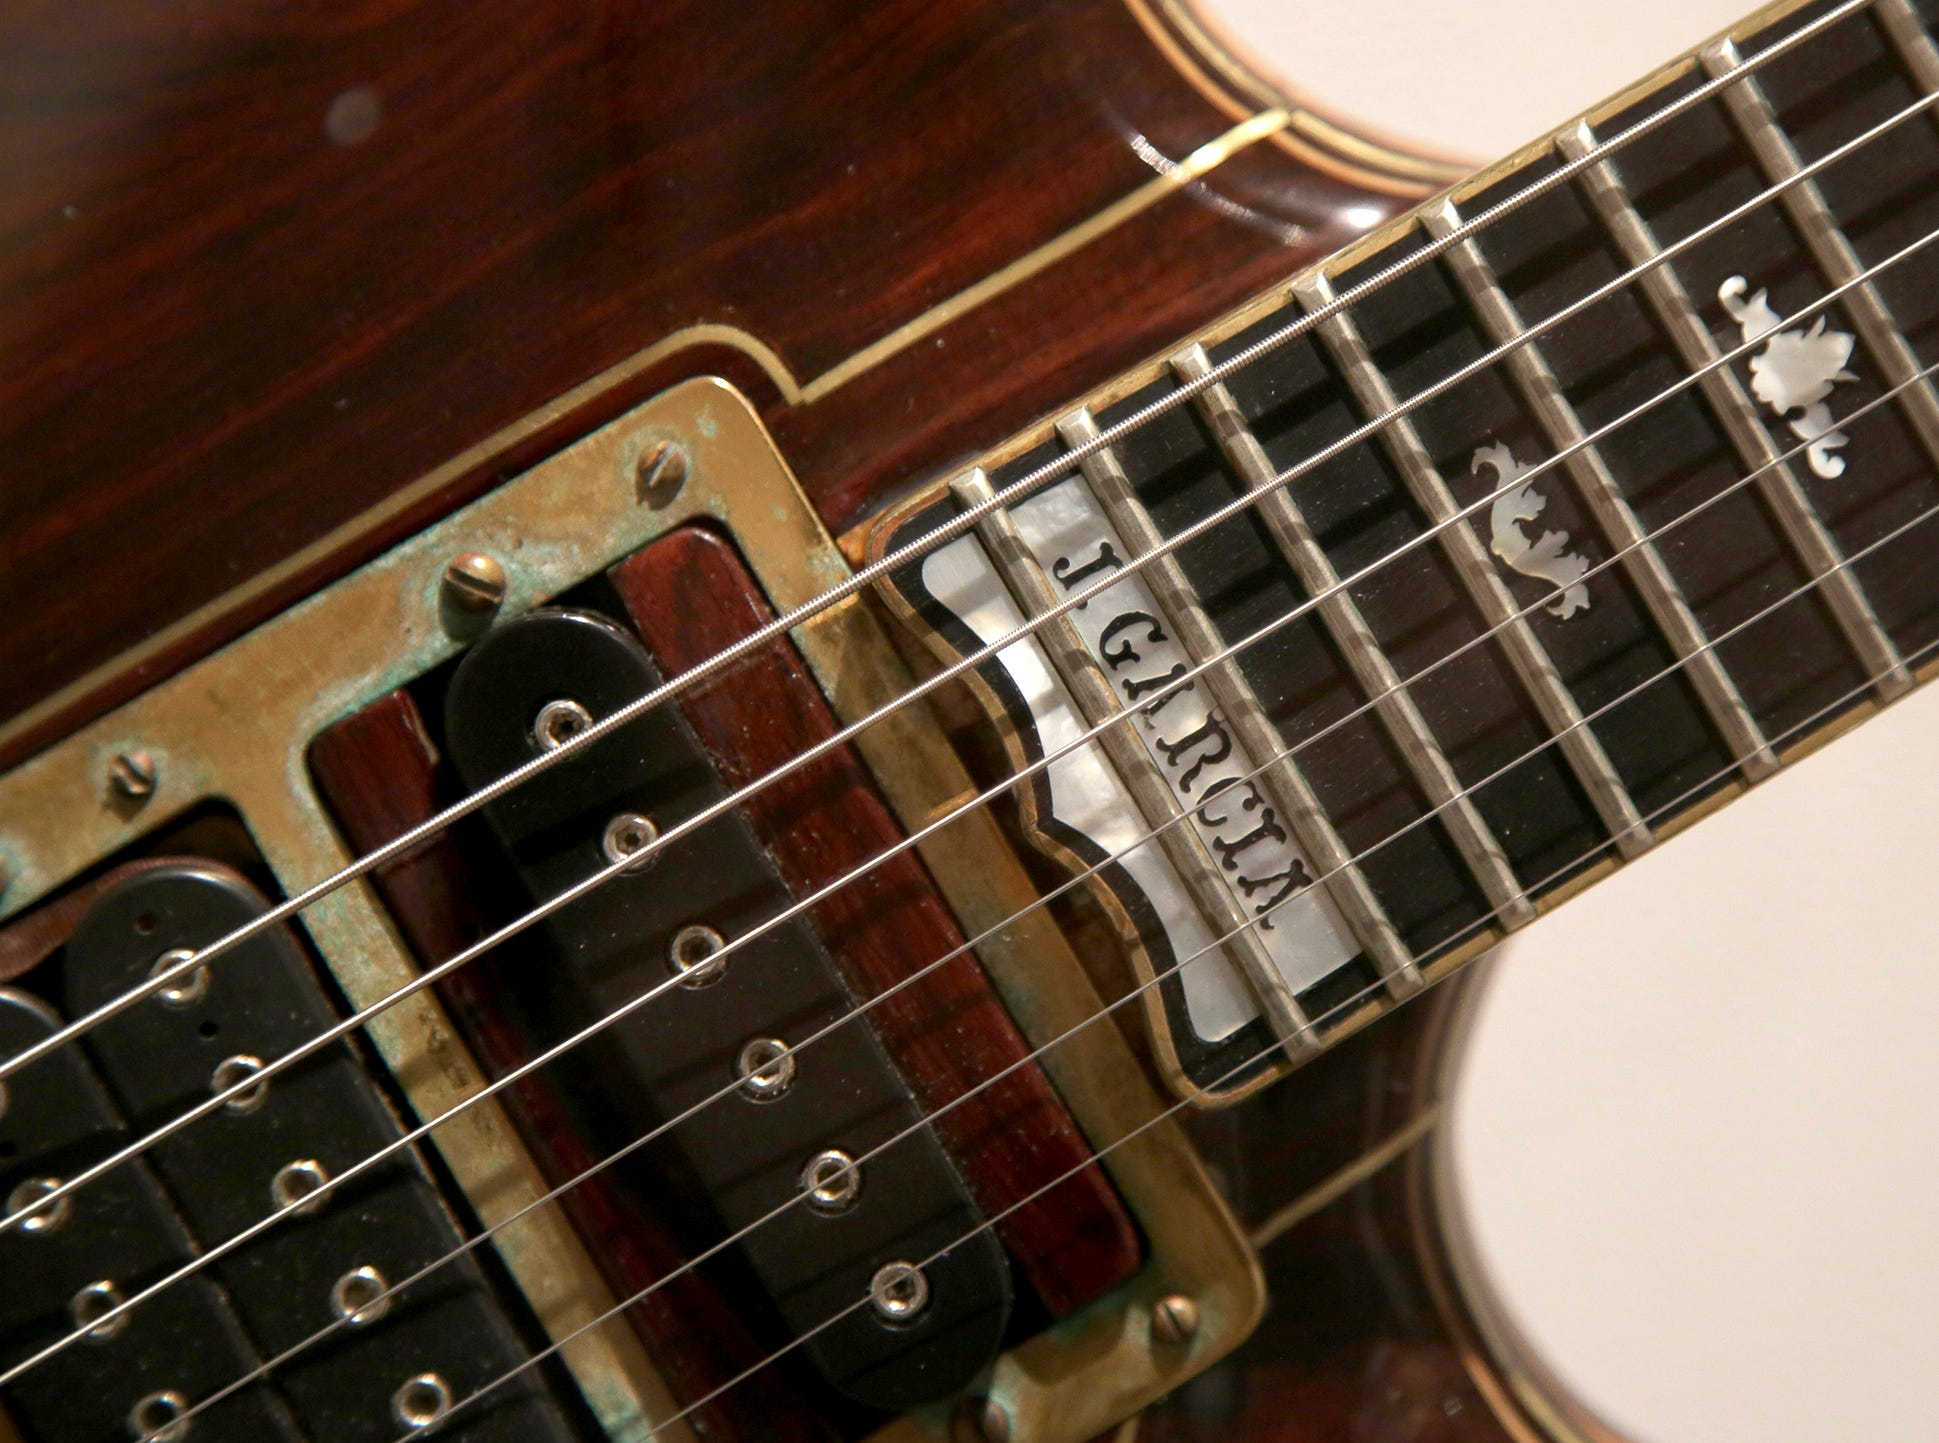 A custom guitar played by Jerry Garcia of The Grateful Dead on display.